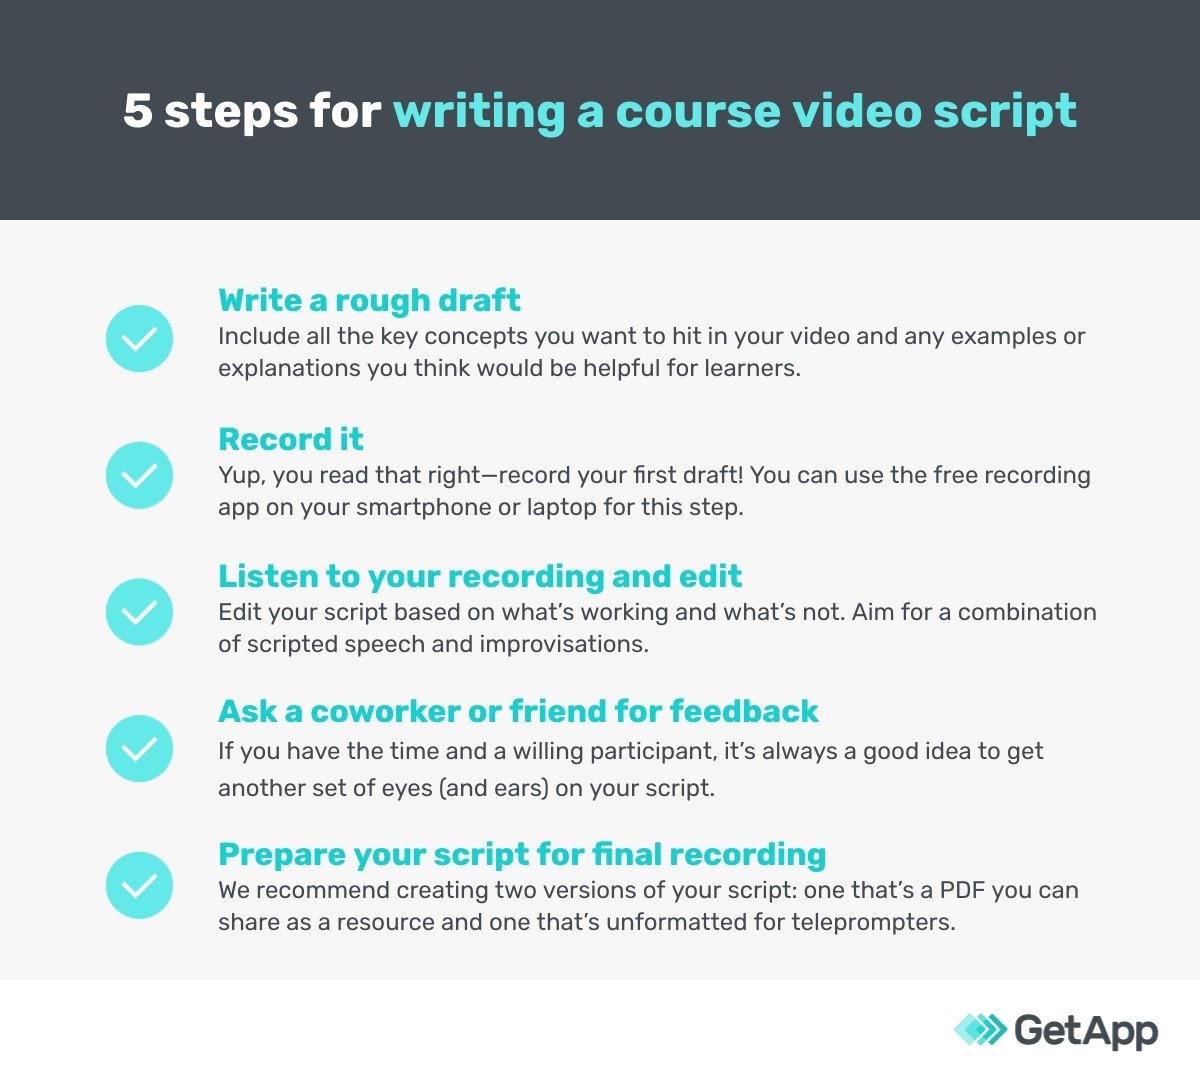 5 steps for writing a course video script